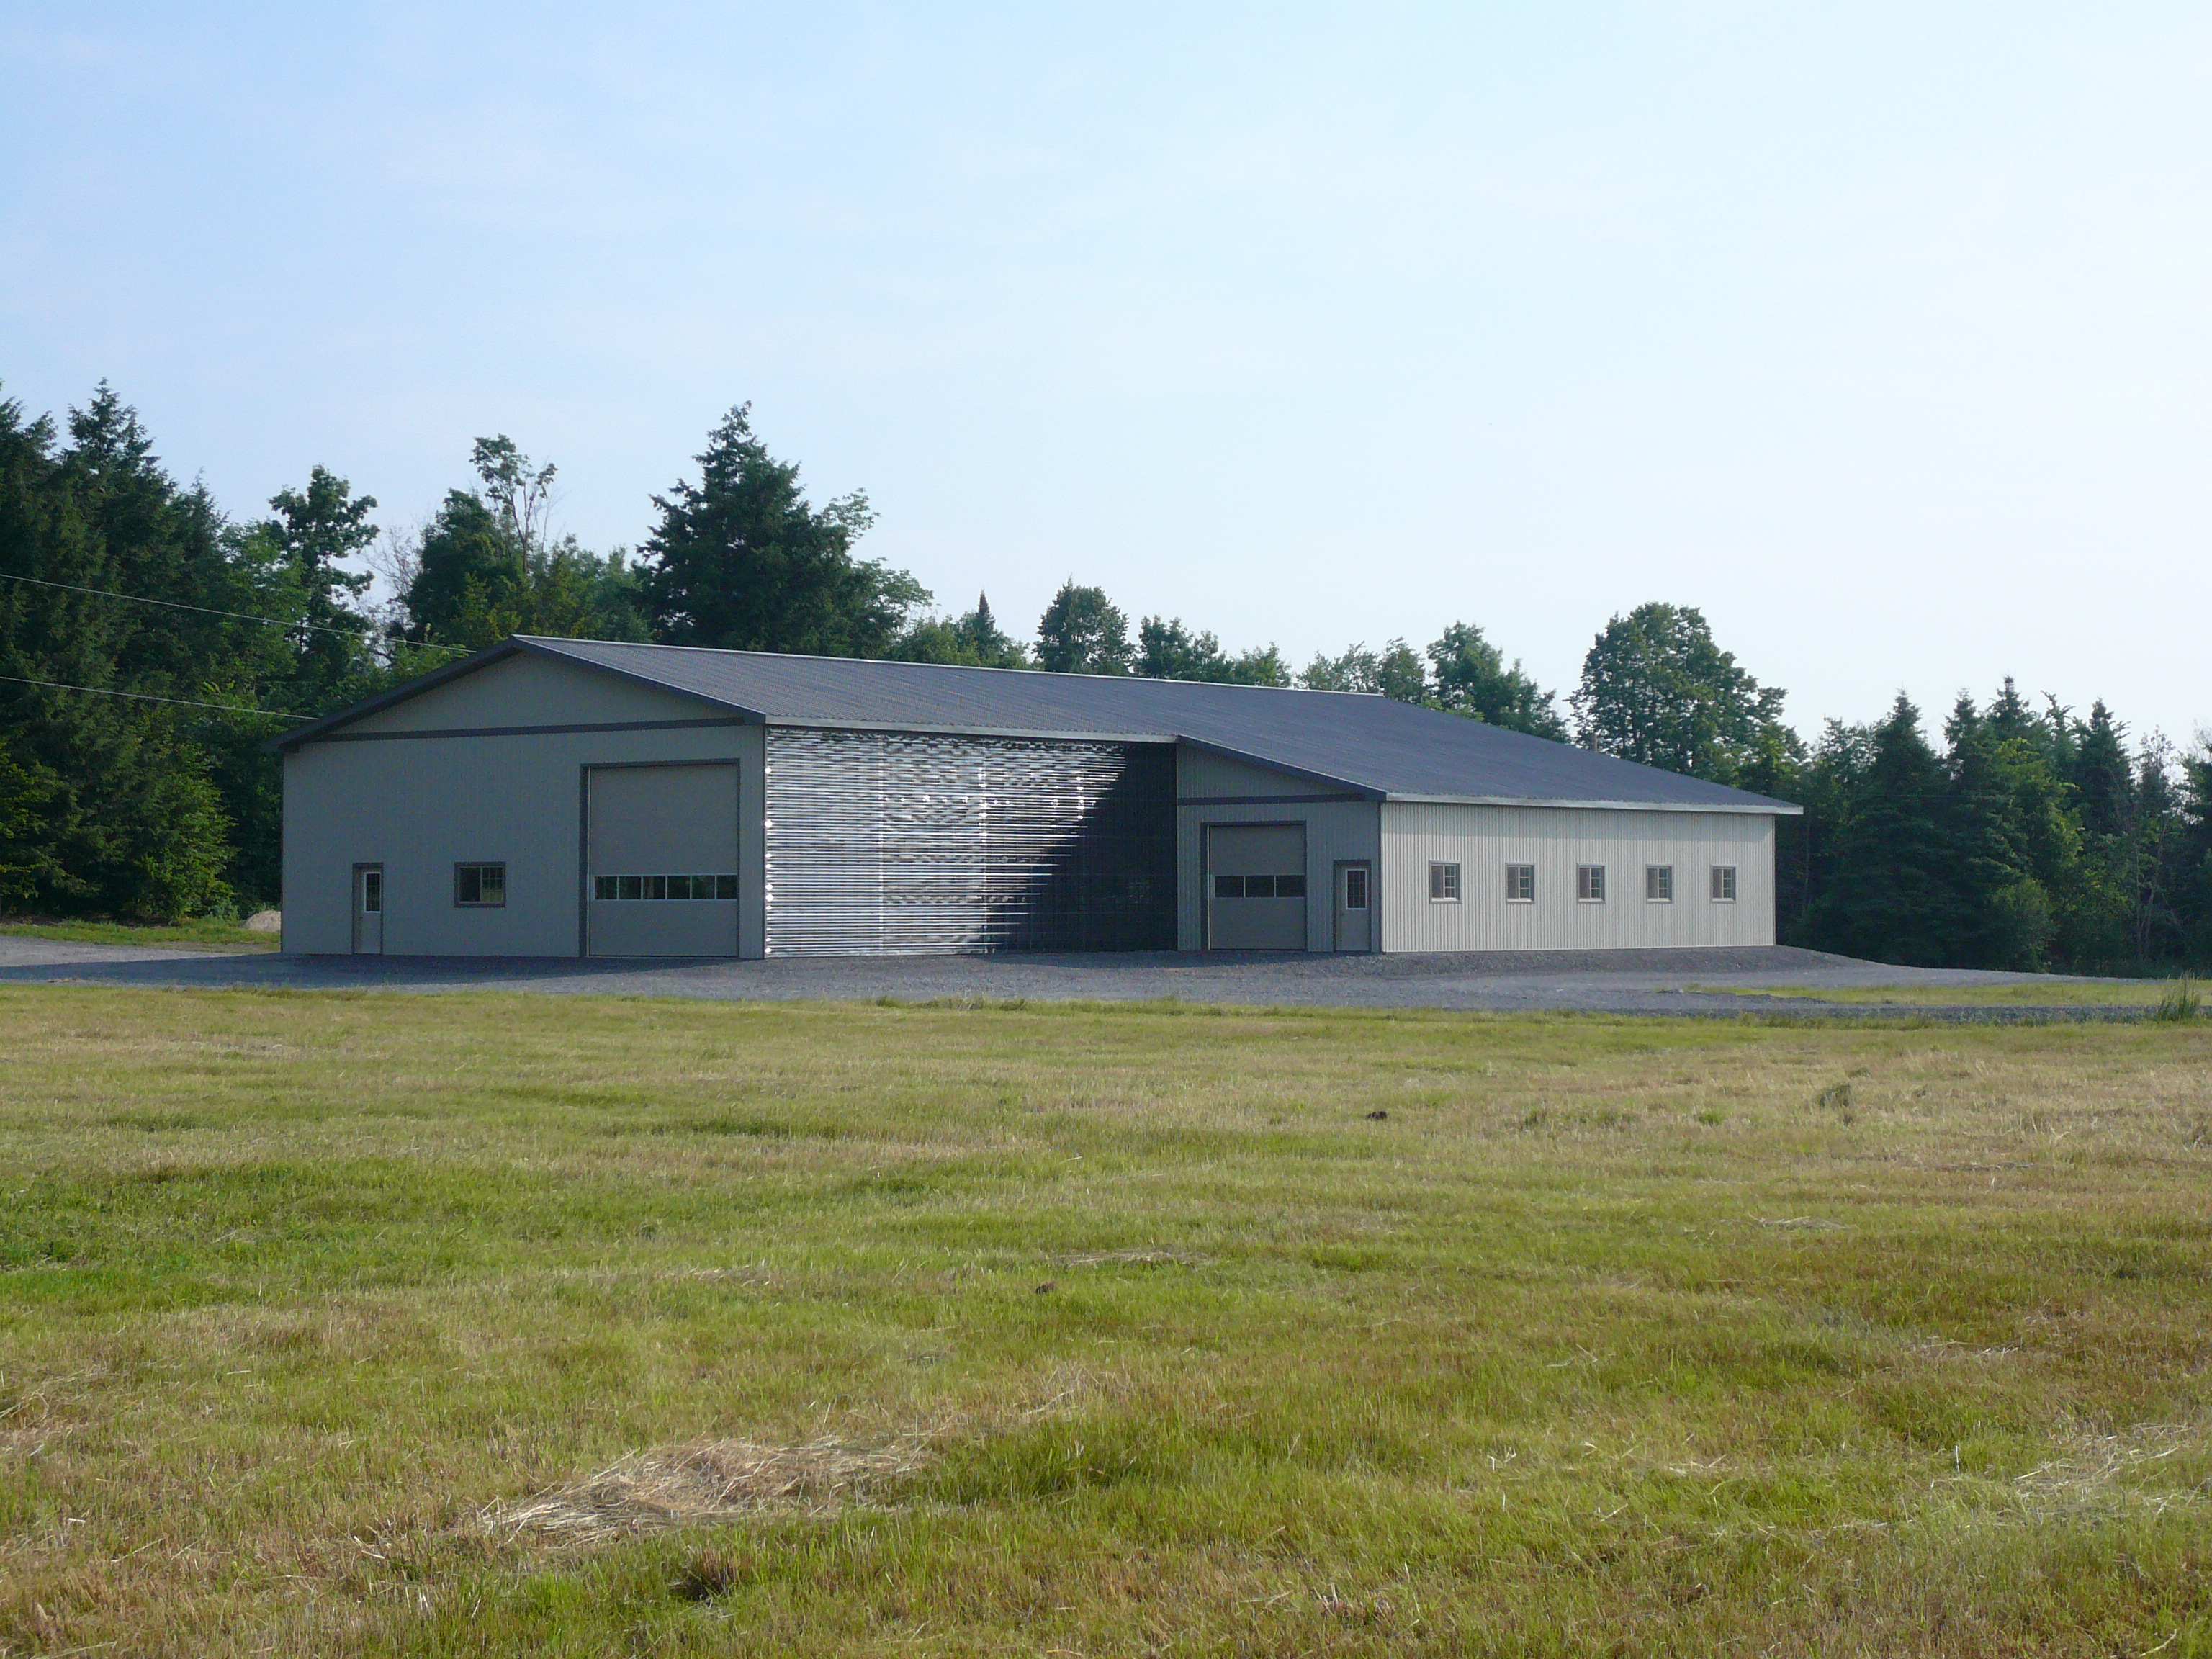 Simpson farm storage building argue construction for Farm house construction